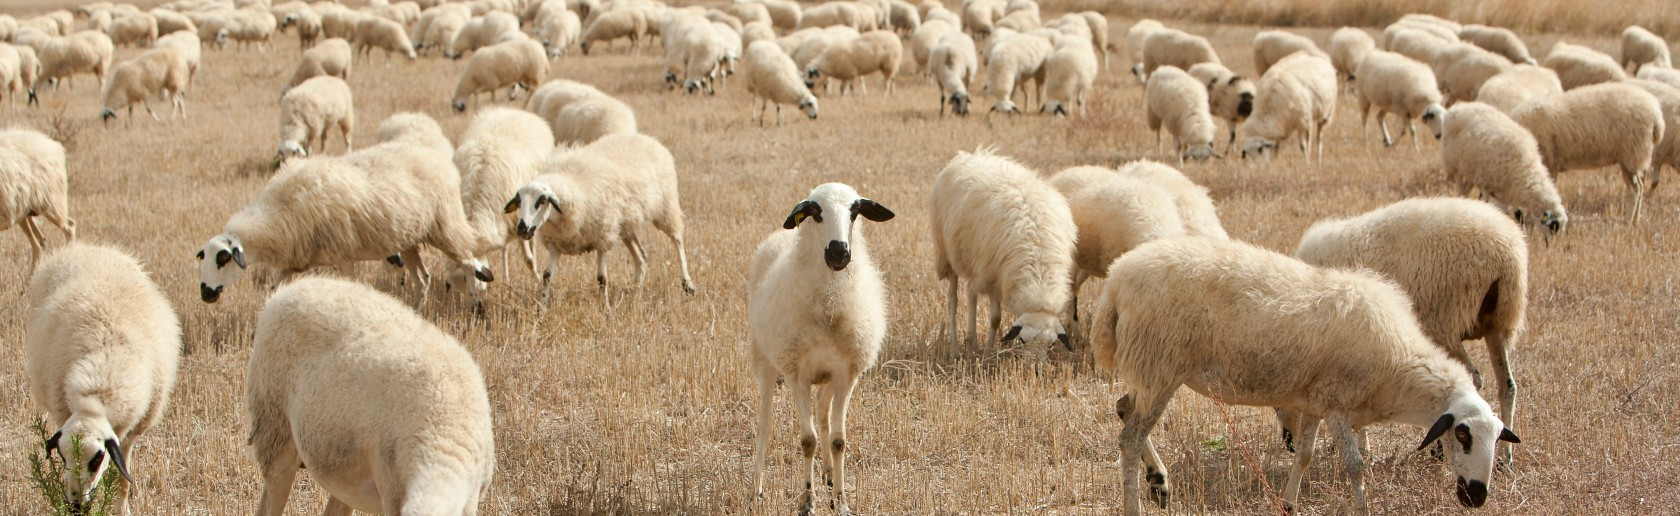 Sheep grazing in a field with one sheep standing staring directly at the camera